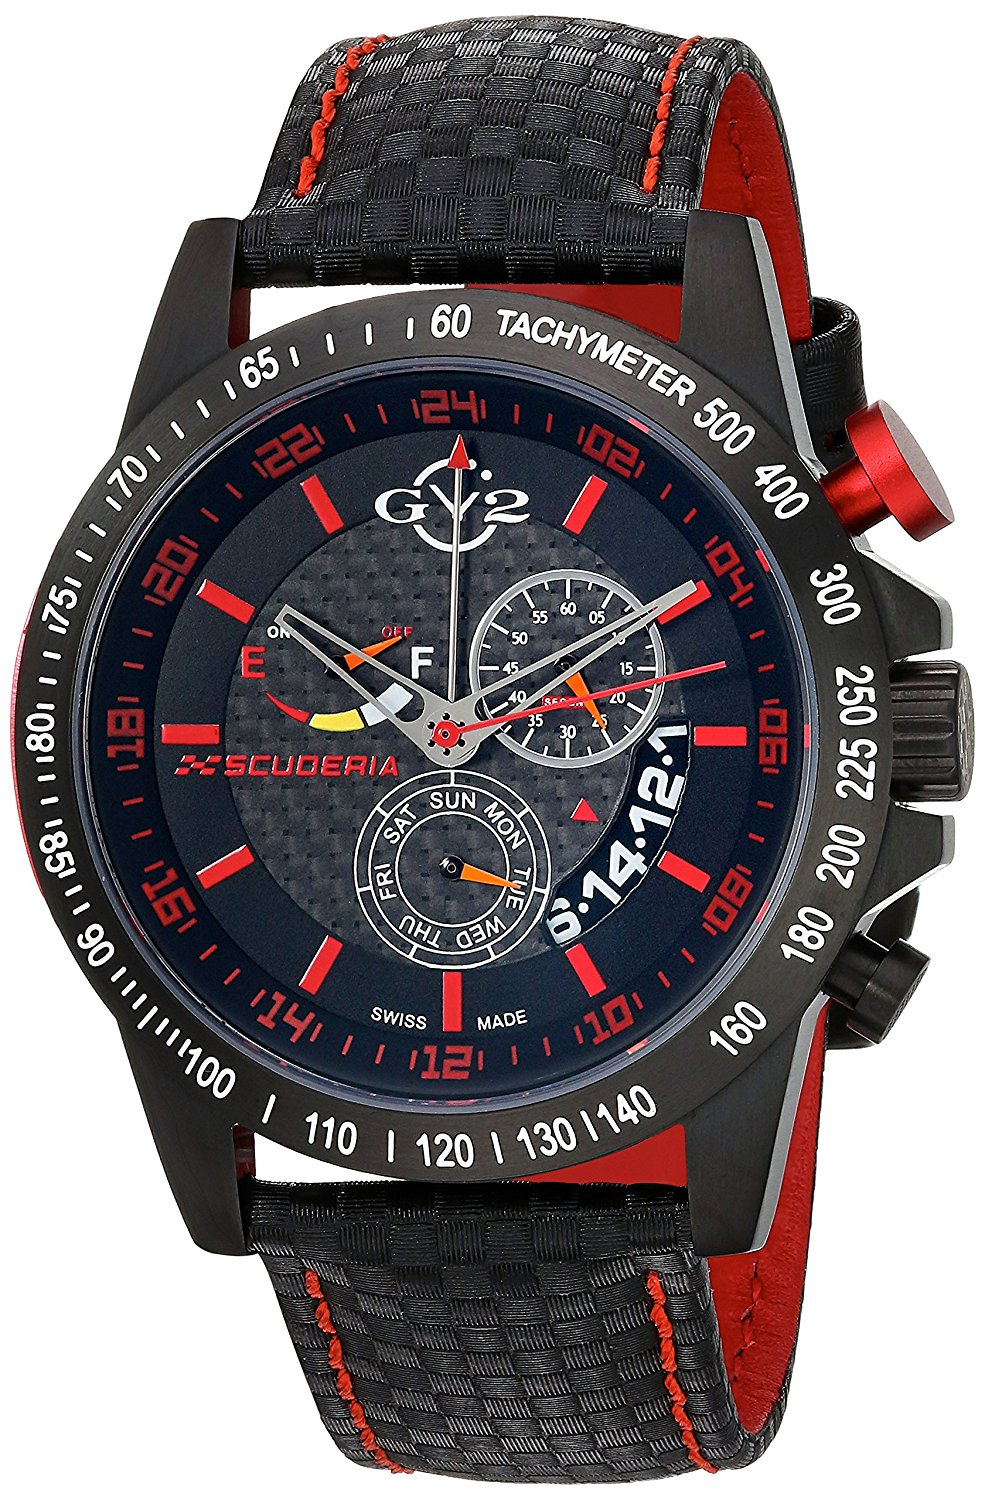 GV2 by Gevril Scuderia Mens Chronograph Swiss Quartz Alarm GMT Black Leather Strap Sports Racing Watch, (Model: 9903)